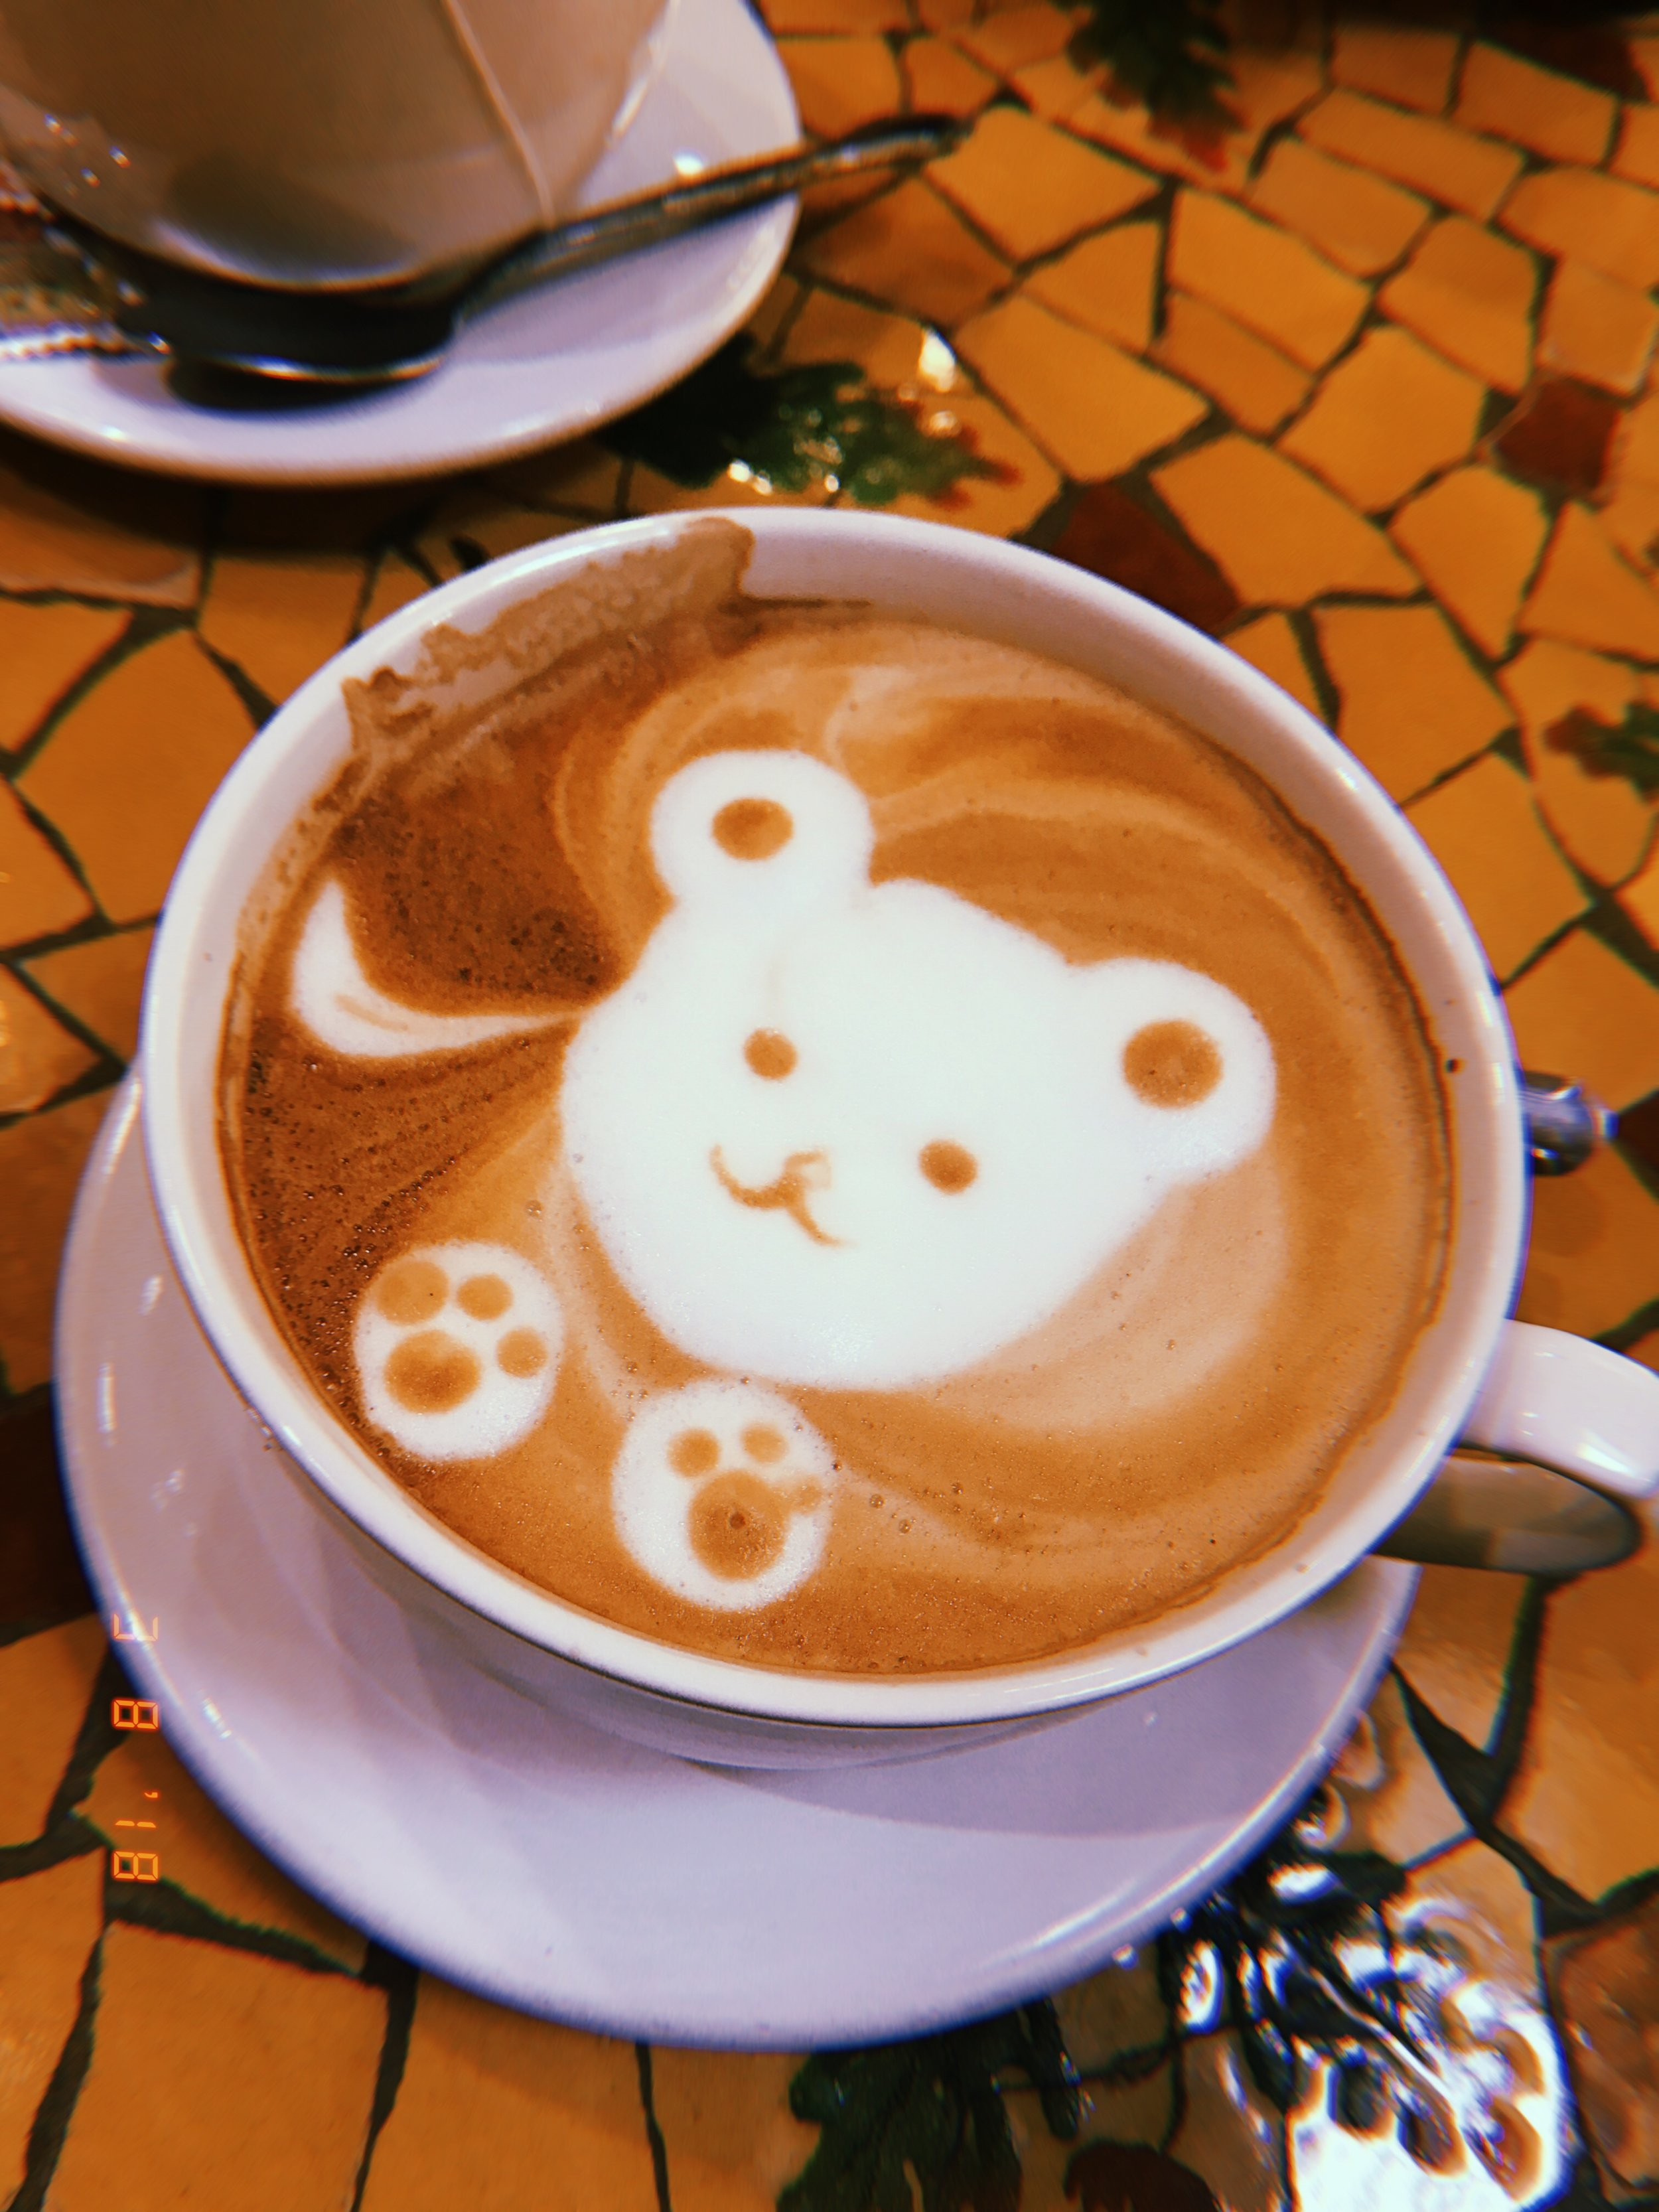 Adorable latte art courtesy of Cocola Bakery in Stonestown Galleria.